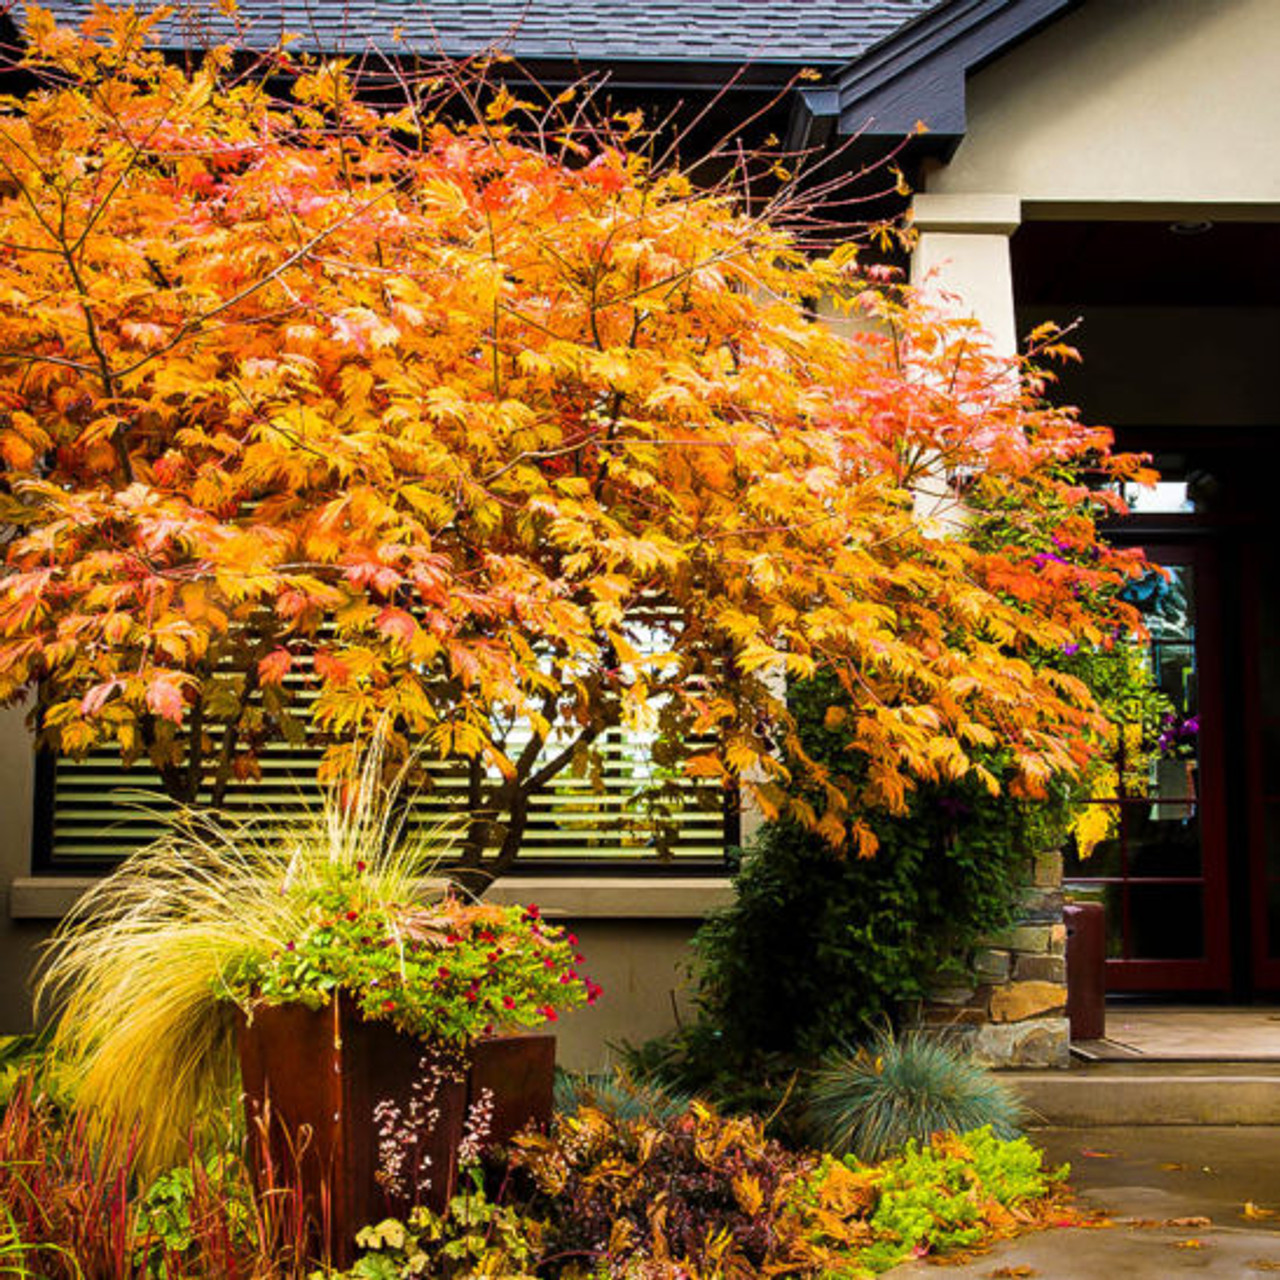 Buy Acer Japonicum Full Moon Japanese Maple Online In Usa Acer